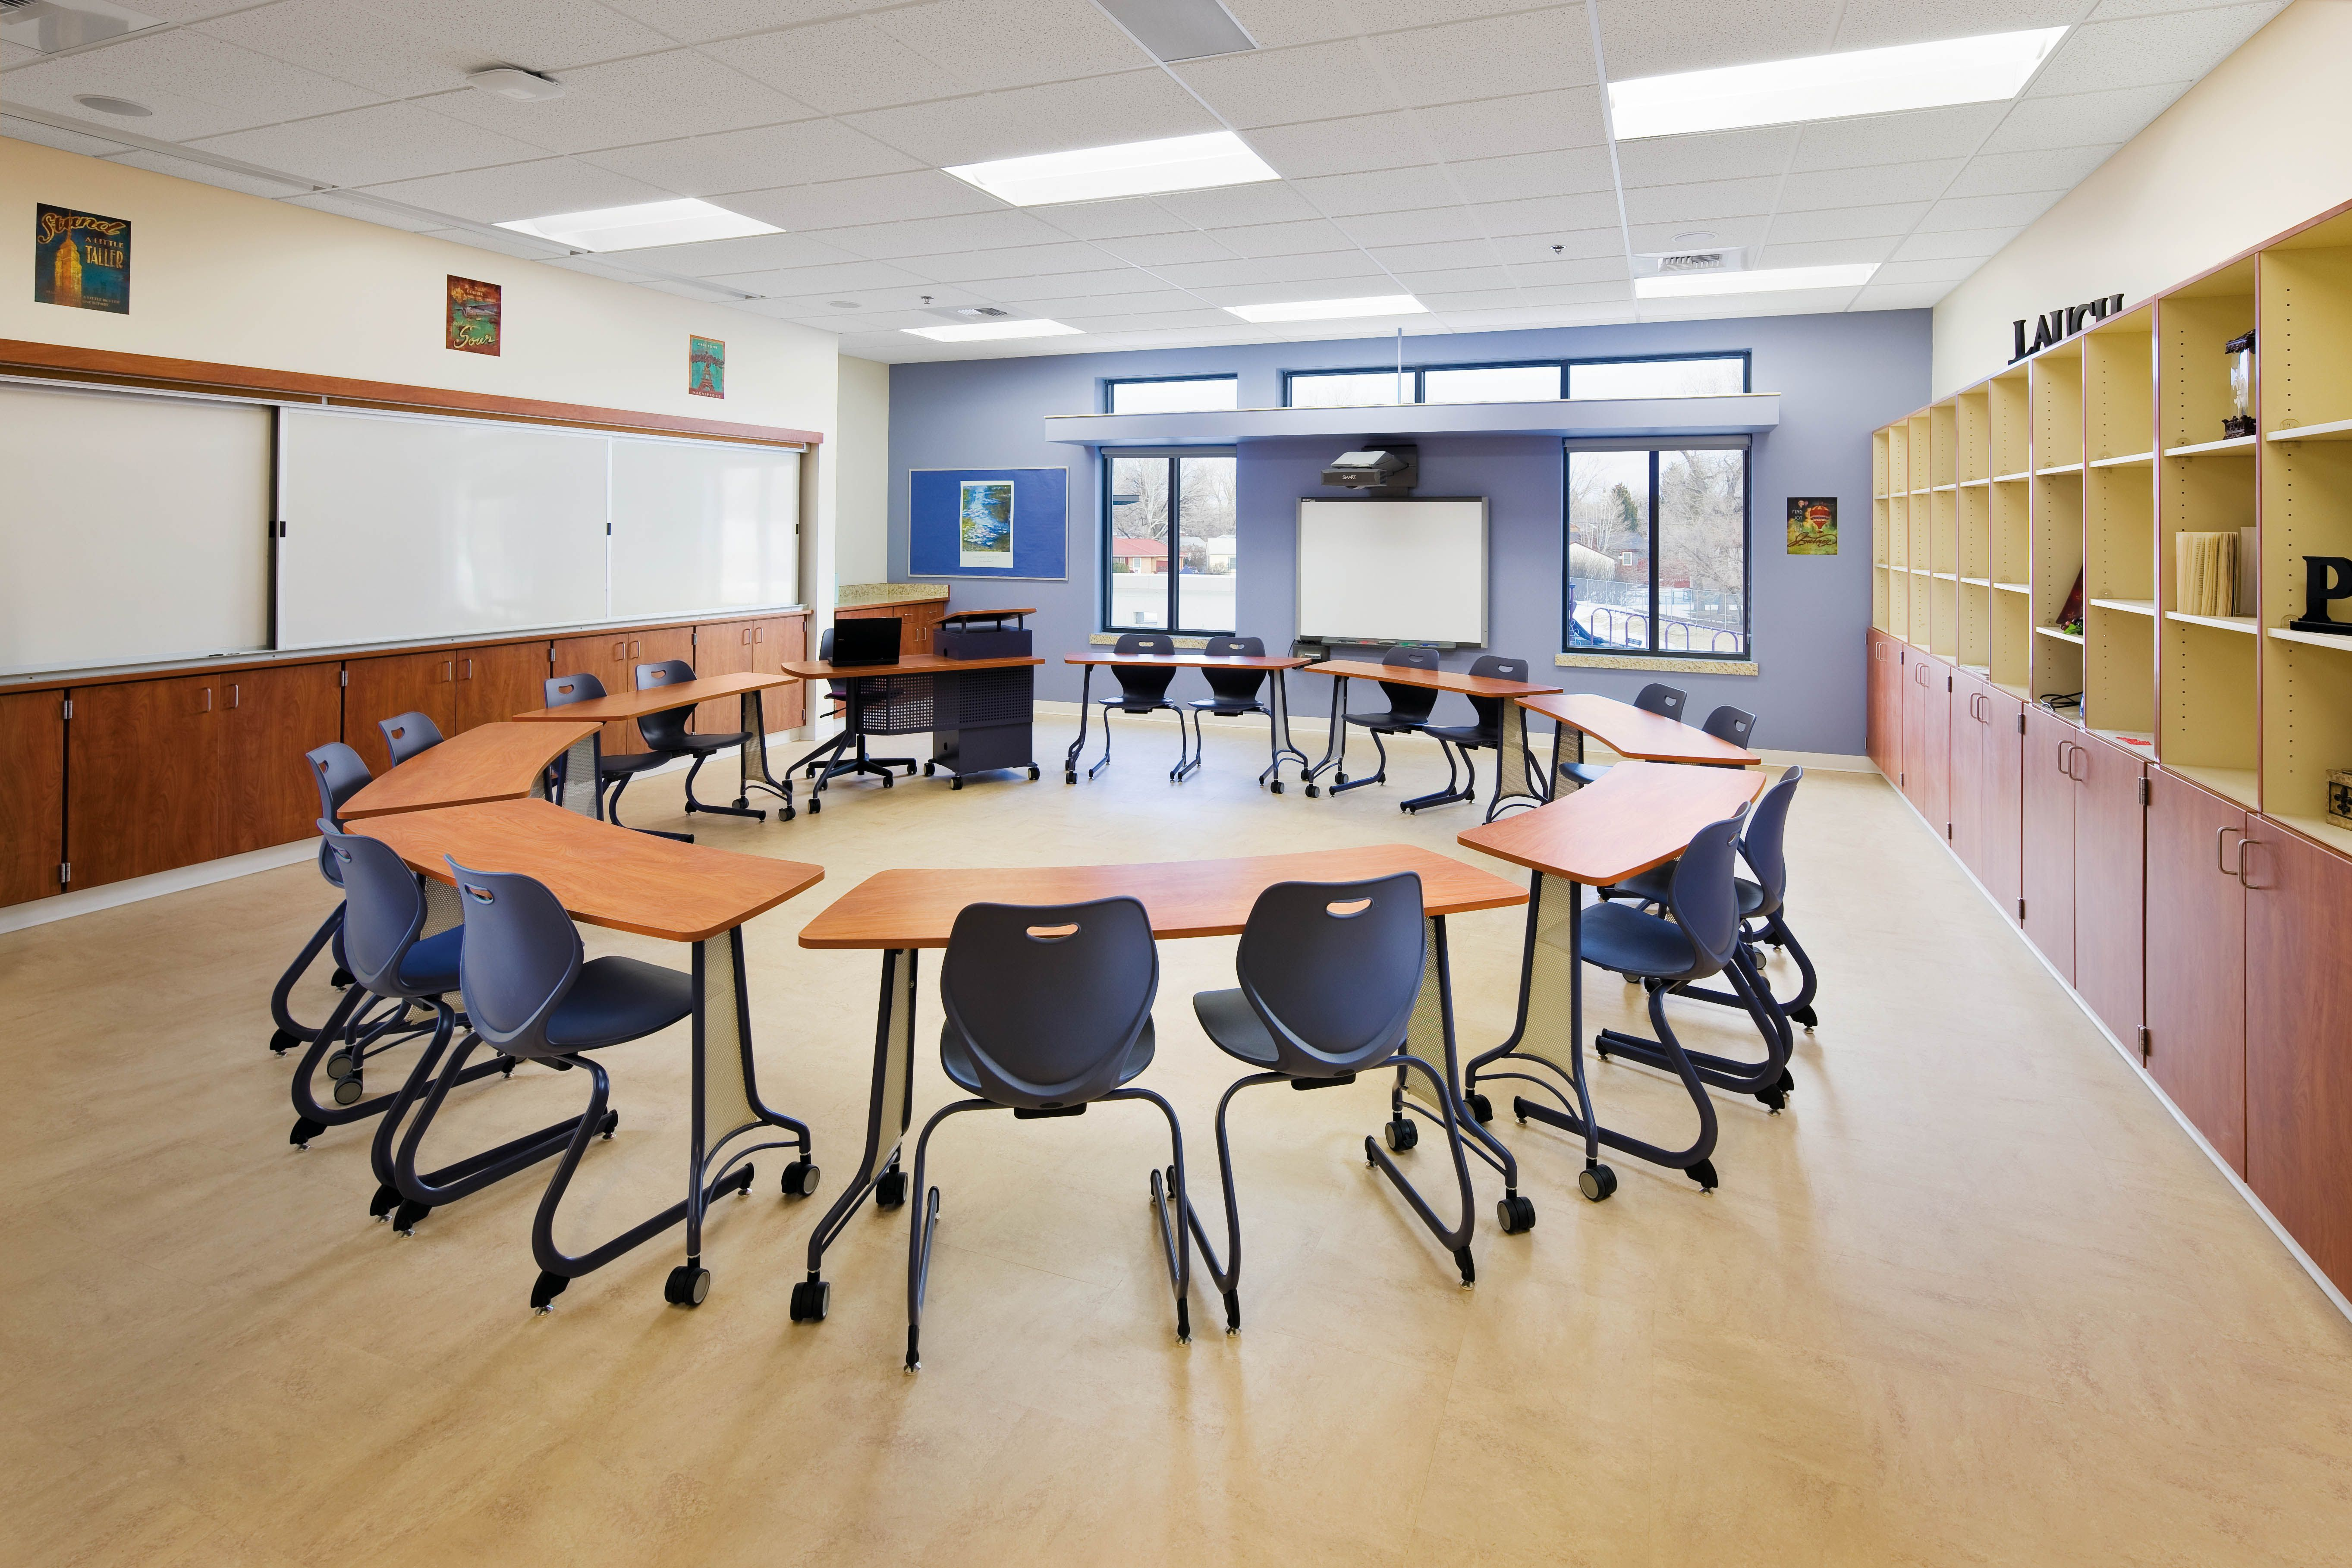 Superieur KI Is The #1 Supplier Of Educational Furniture Solutions. Here Is KIu0027s  Intellect Wave Seating And Enlite Tables. Learn More At Www.ki.com.